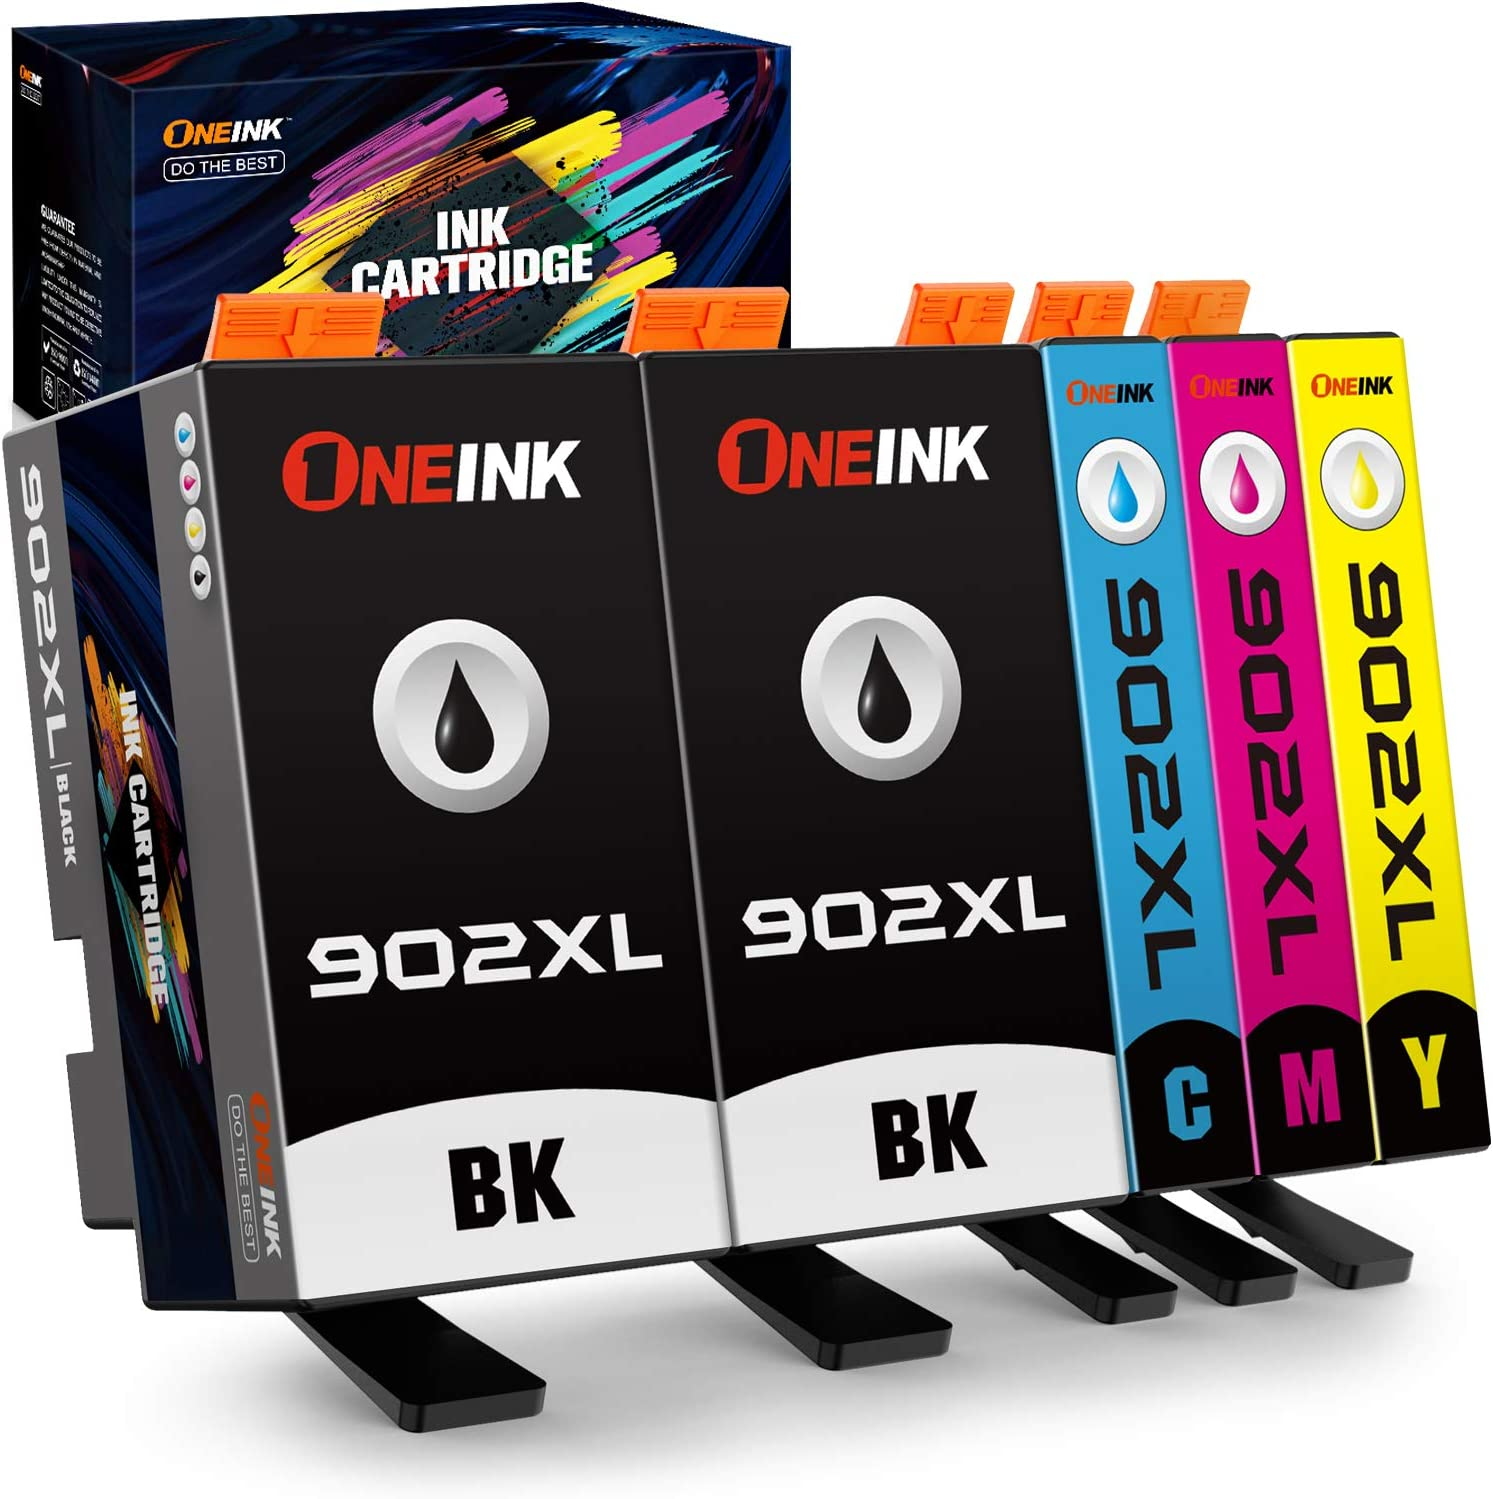 ONEINK Compatible Ink Cartridge Replacement for HP 902XL 902 902 XL Ink Cartridge to Work with HP OfficeJet Pro 6968 6970 6971 6974 6975 6978 6979 6960 6961 Printers,5 Pack(Black,Cyan,Magenta,Yellow)